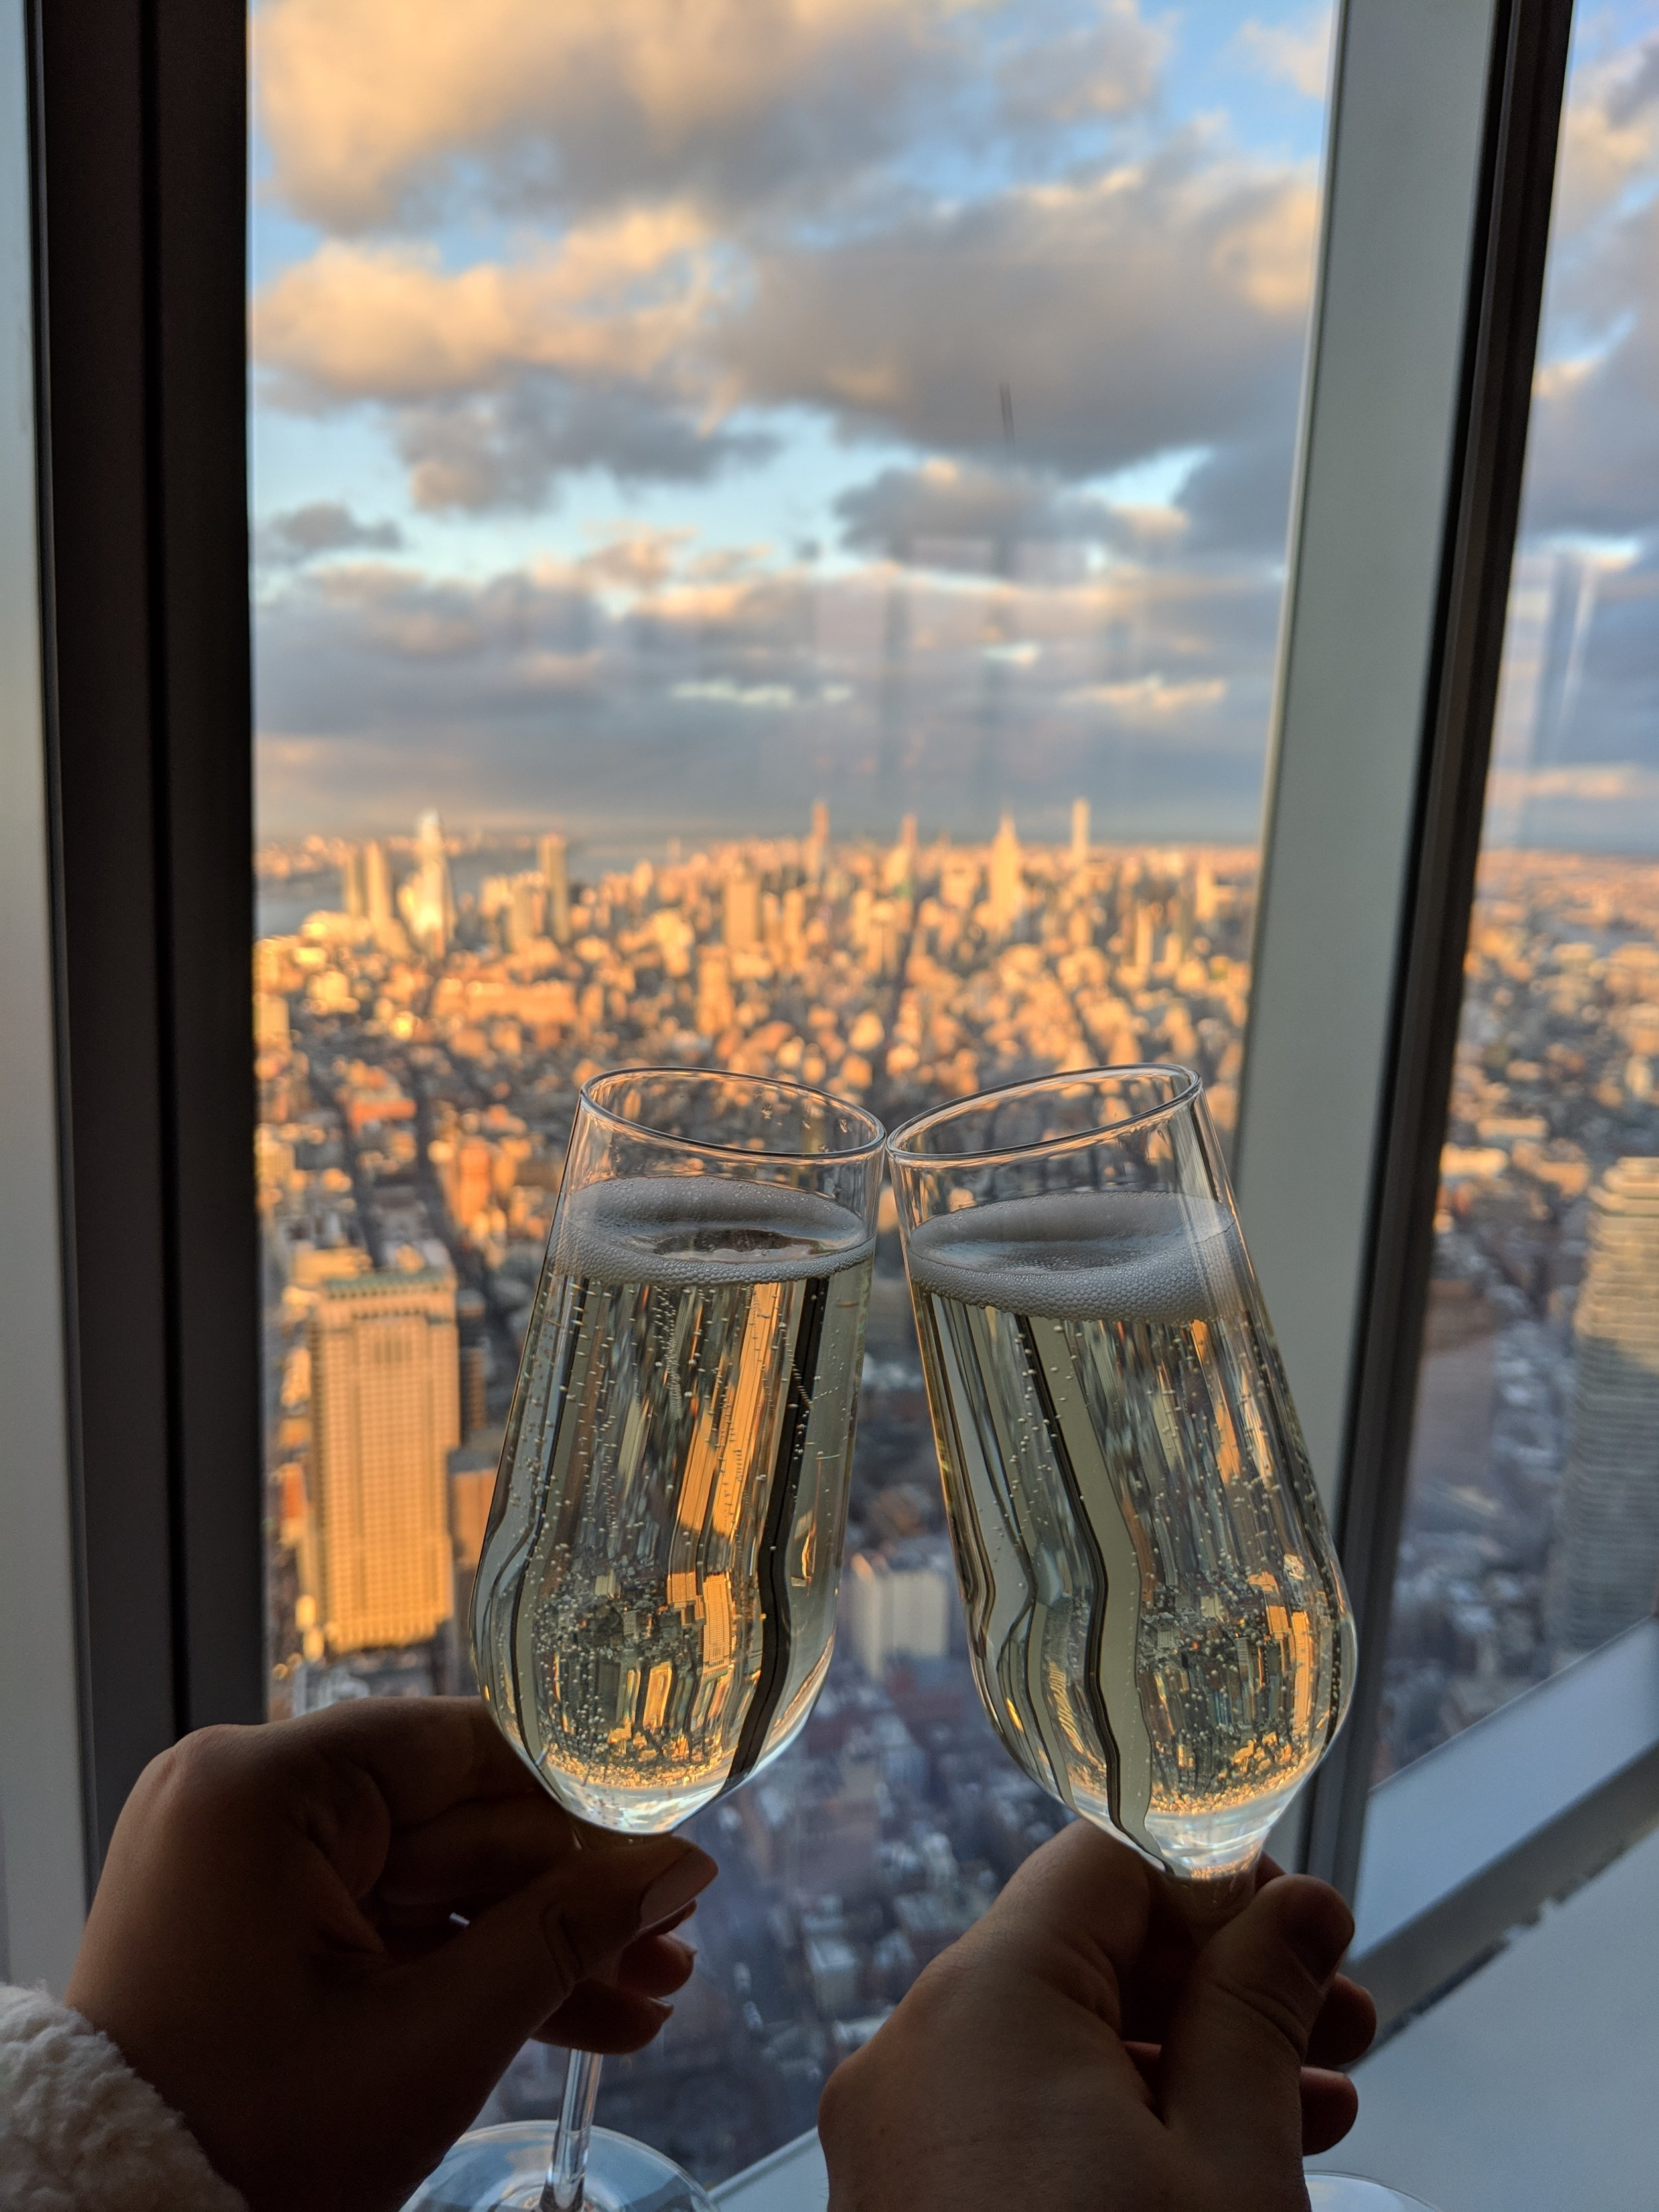 Cheers from the top of  One World Observatory